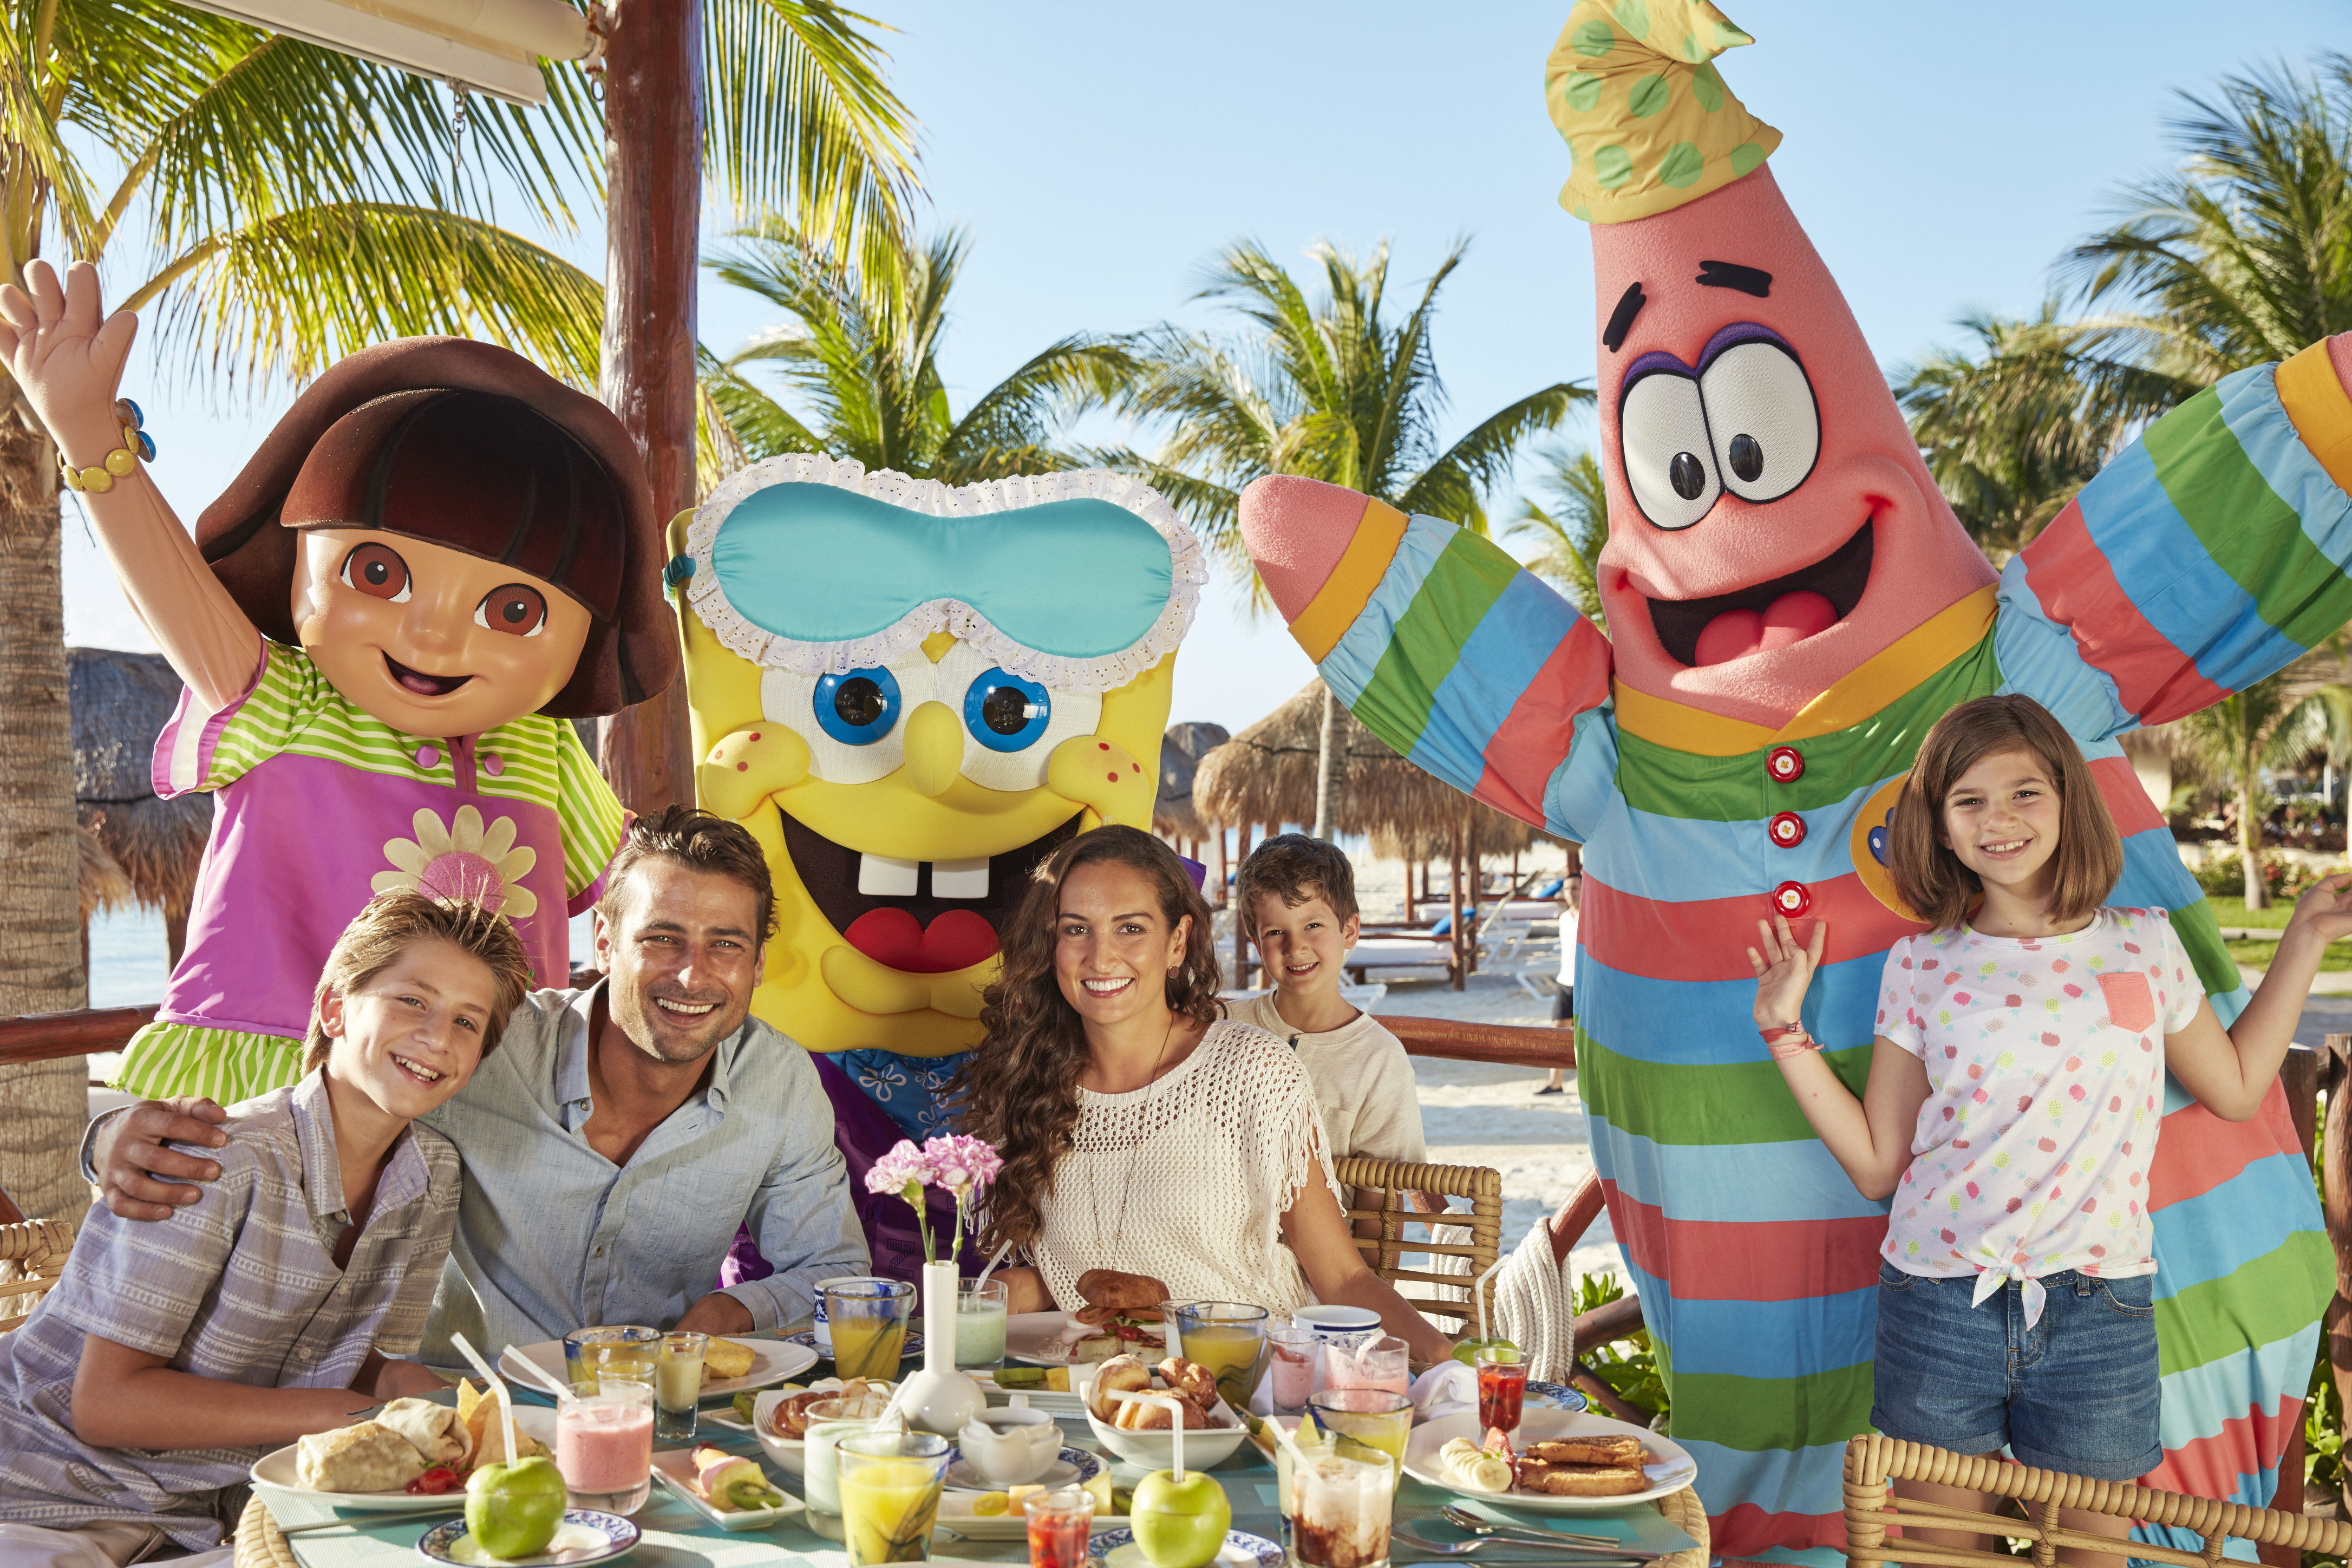 Nickelodeon Hotel & Resort Punta Cana